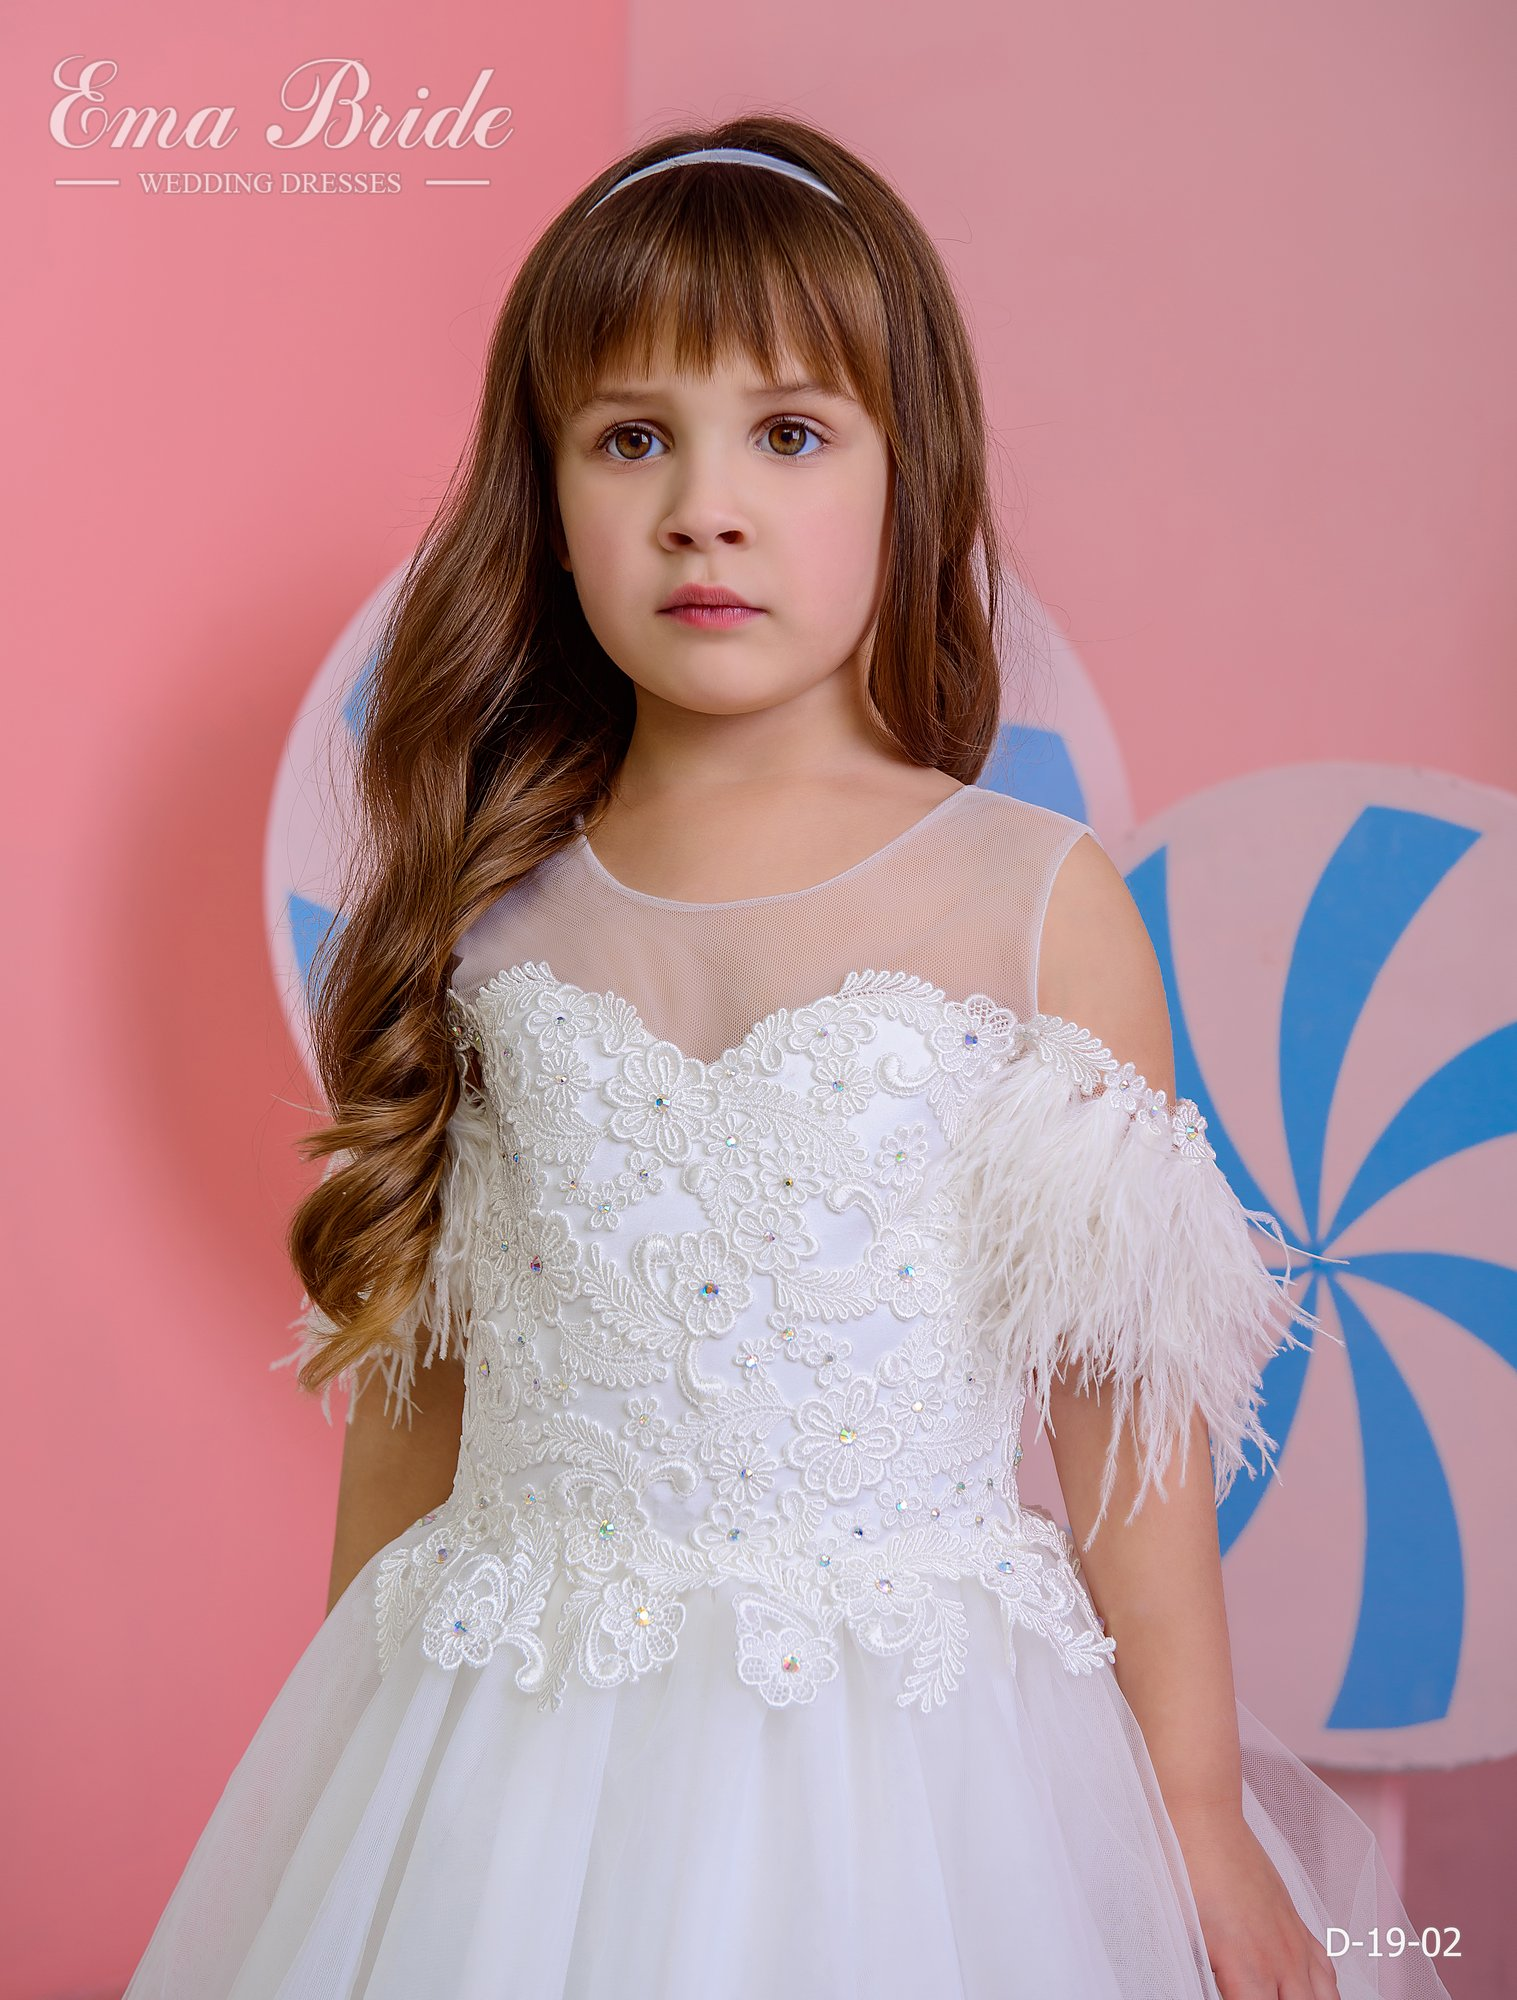 Children's dress by EmaBride D-19-02 2019-1